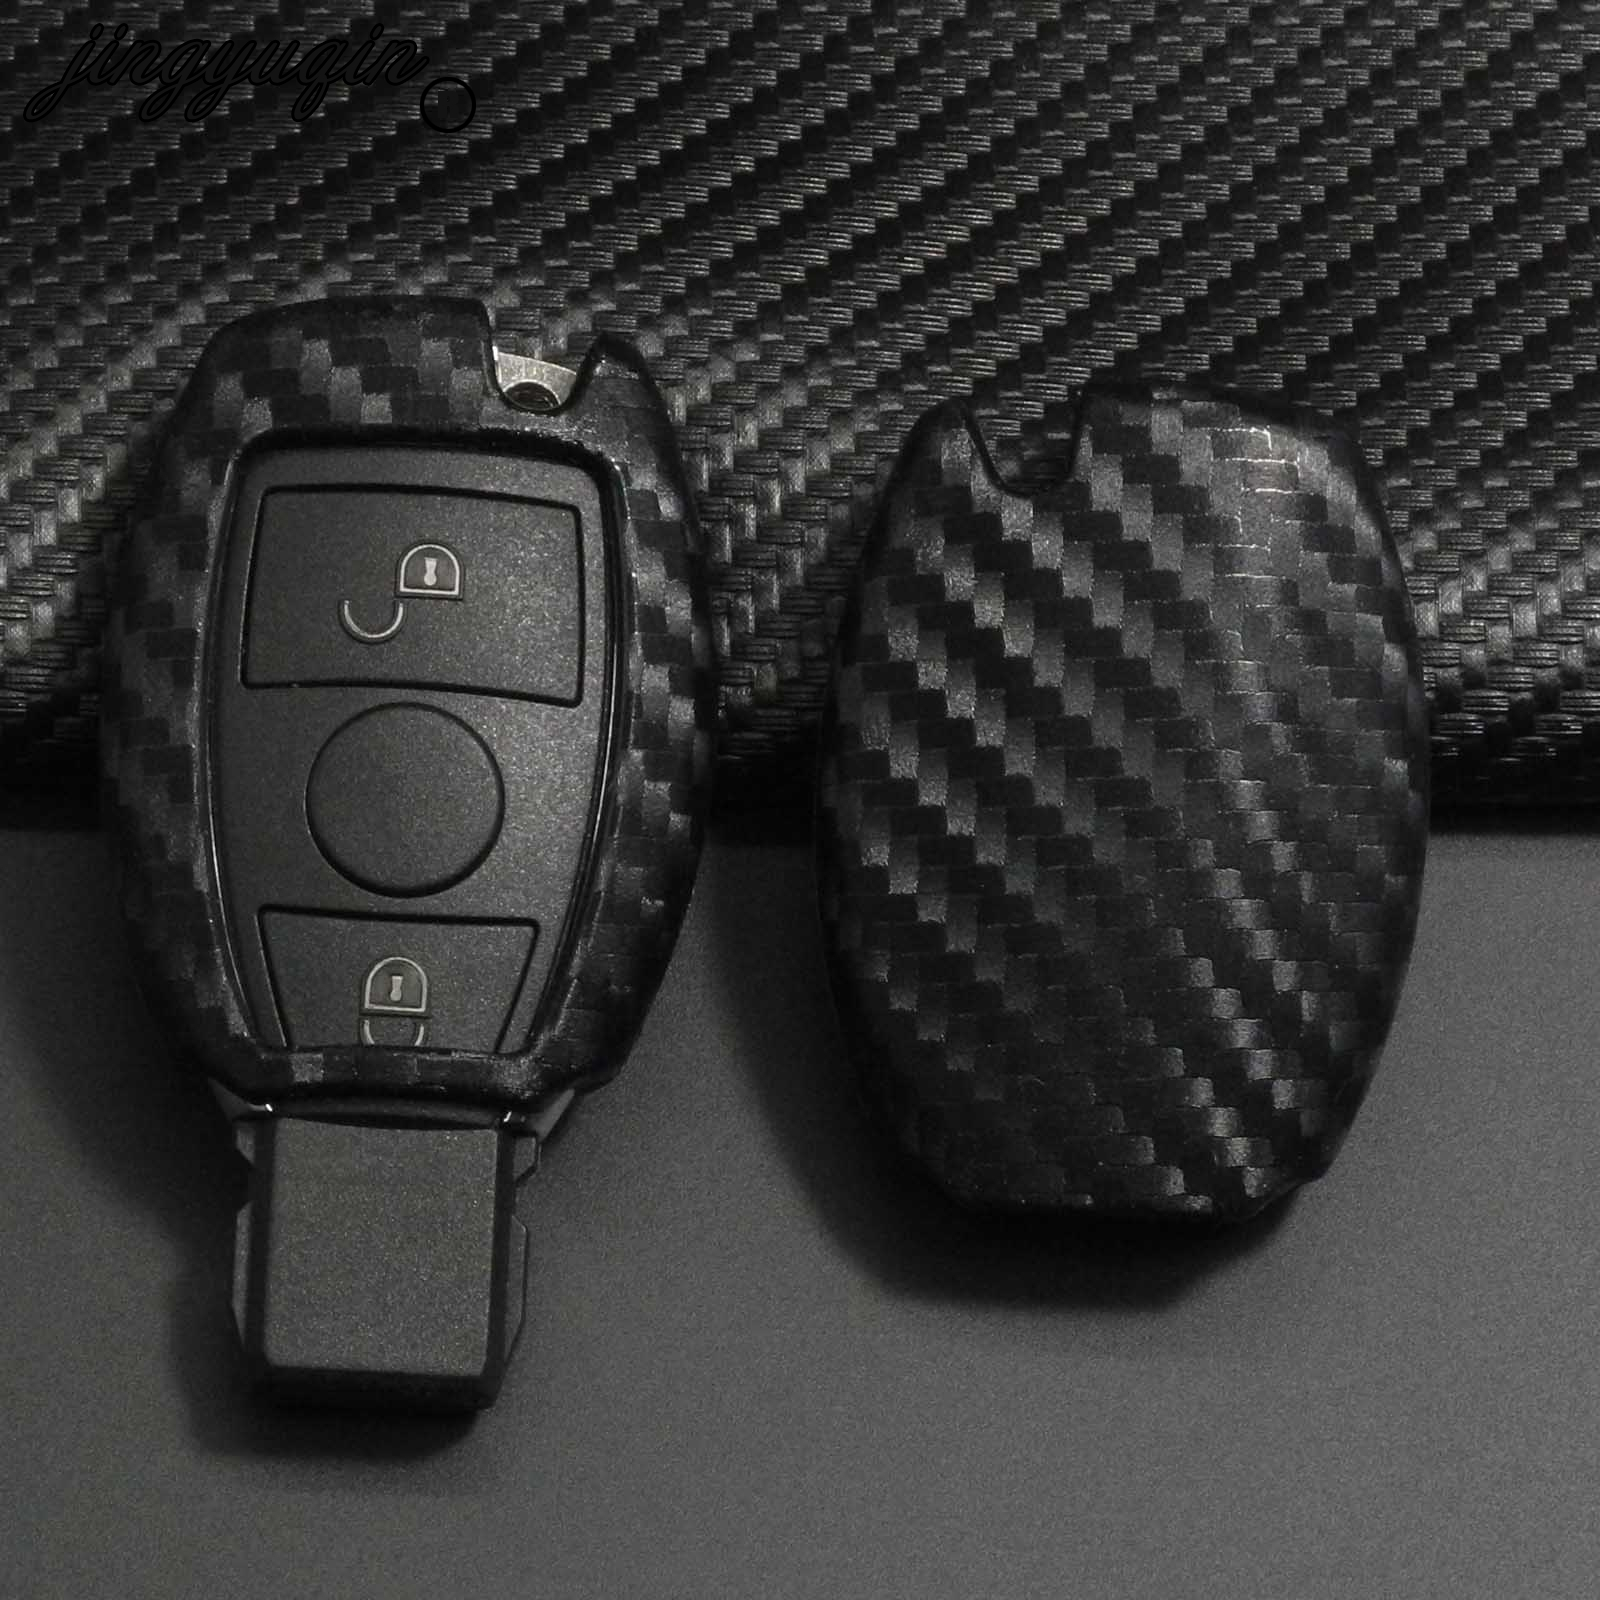 Jingyuqin Carbon Silicone Car Remote Key Fob Case Cover For Mercedes Benz CLS CLA GL R SLK AMG A B C S Protective Shell Keychain